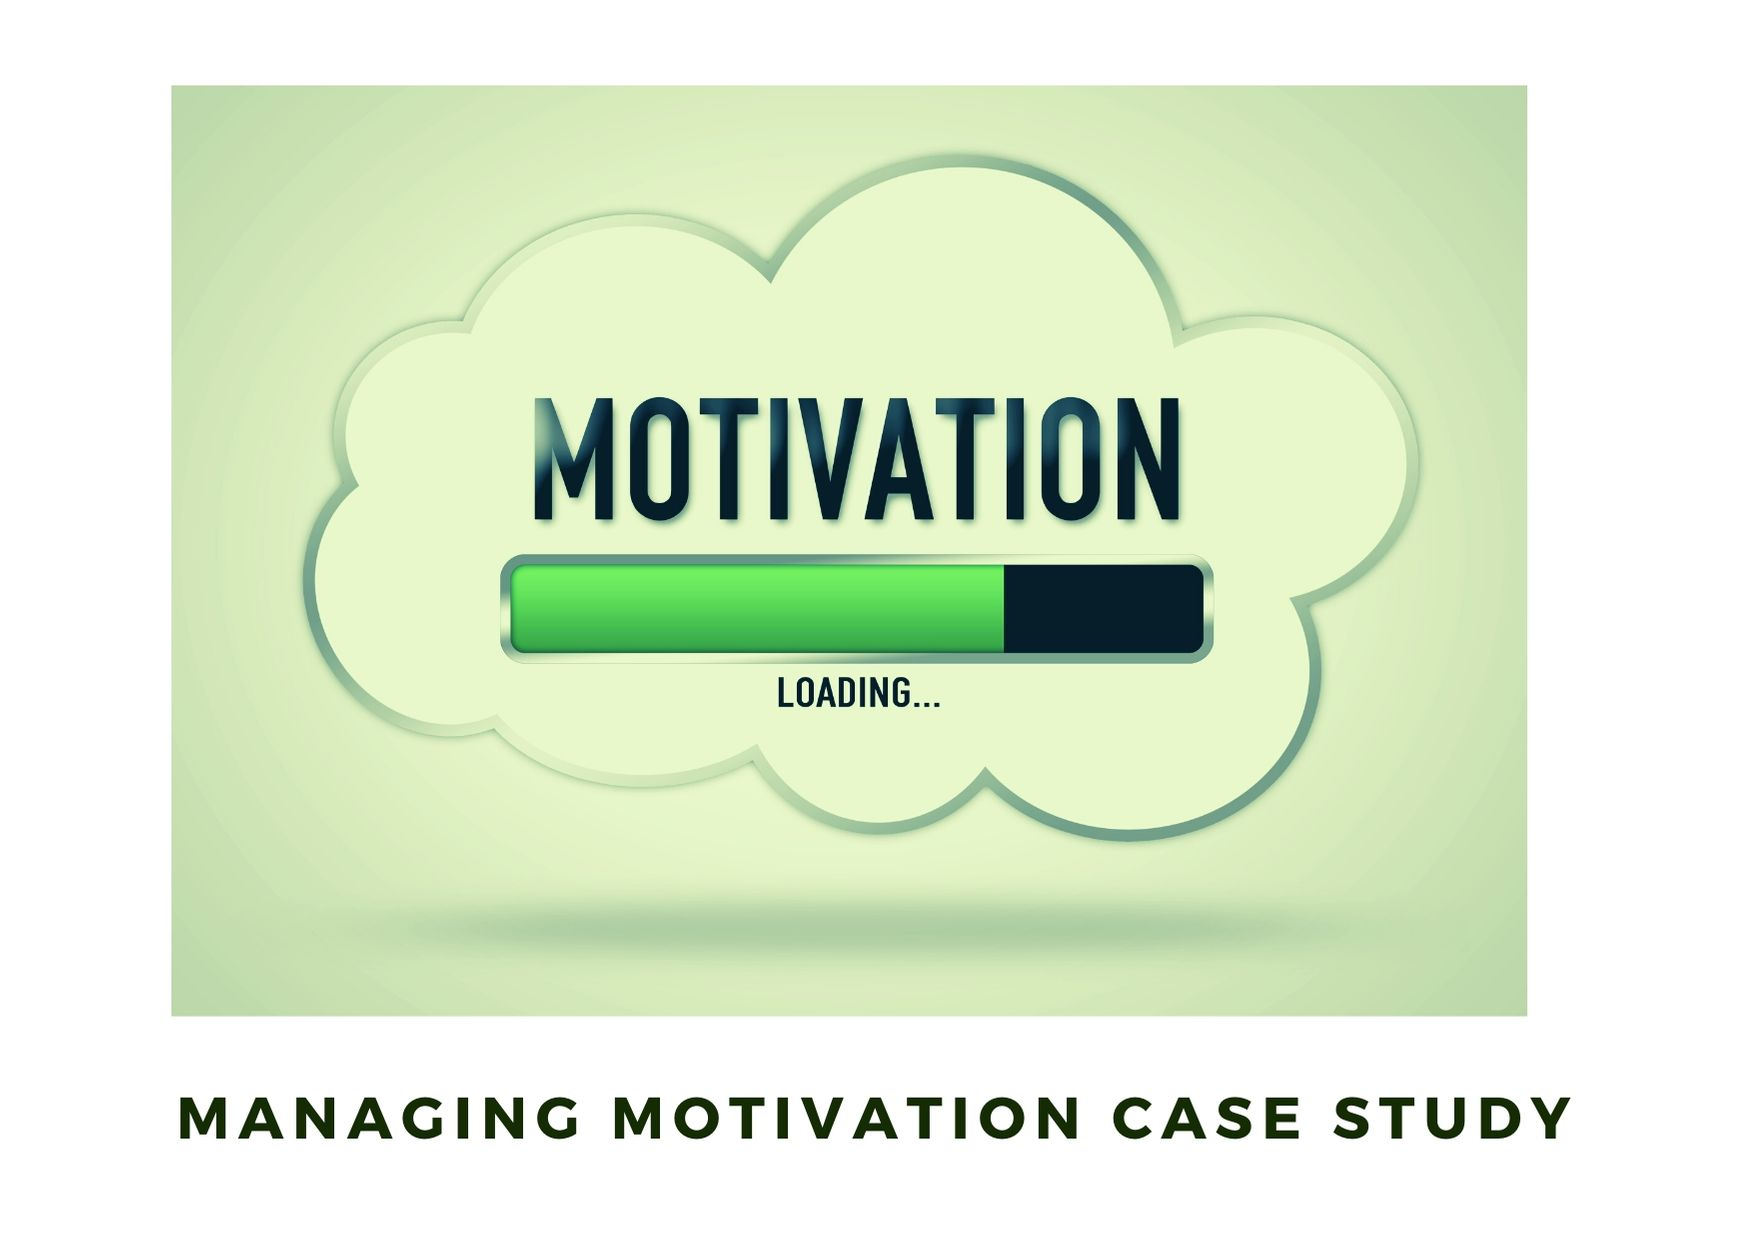 Managing Motivation Case Study